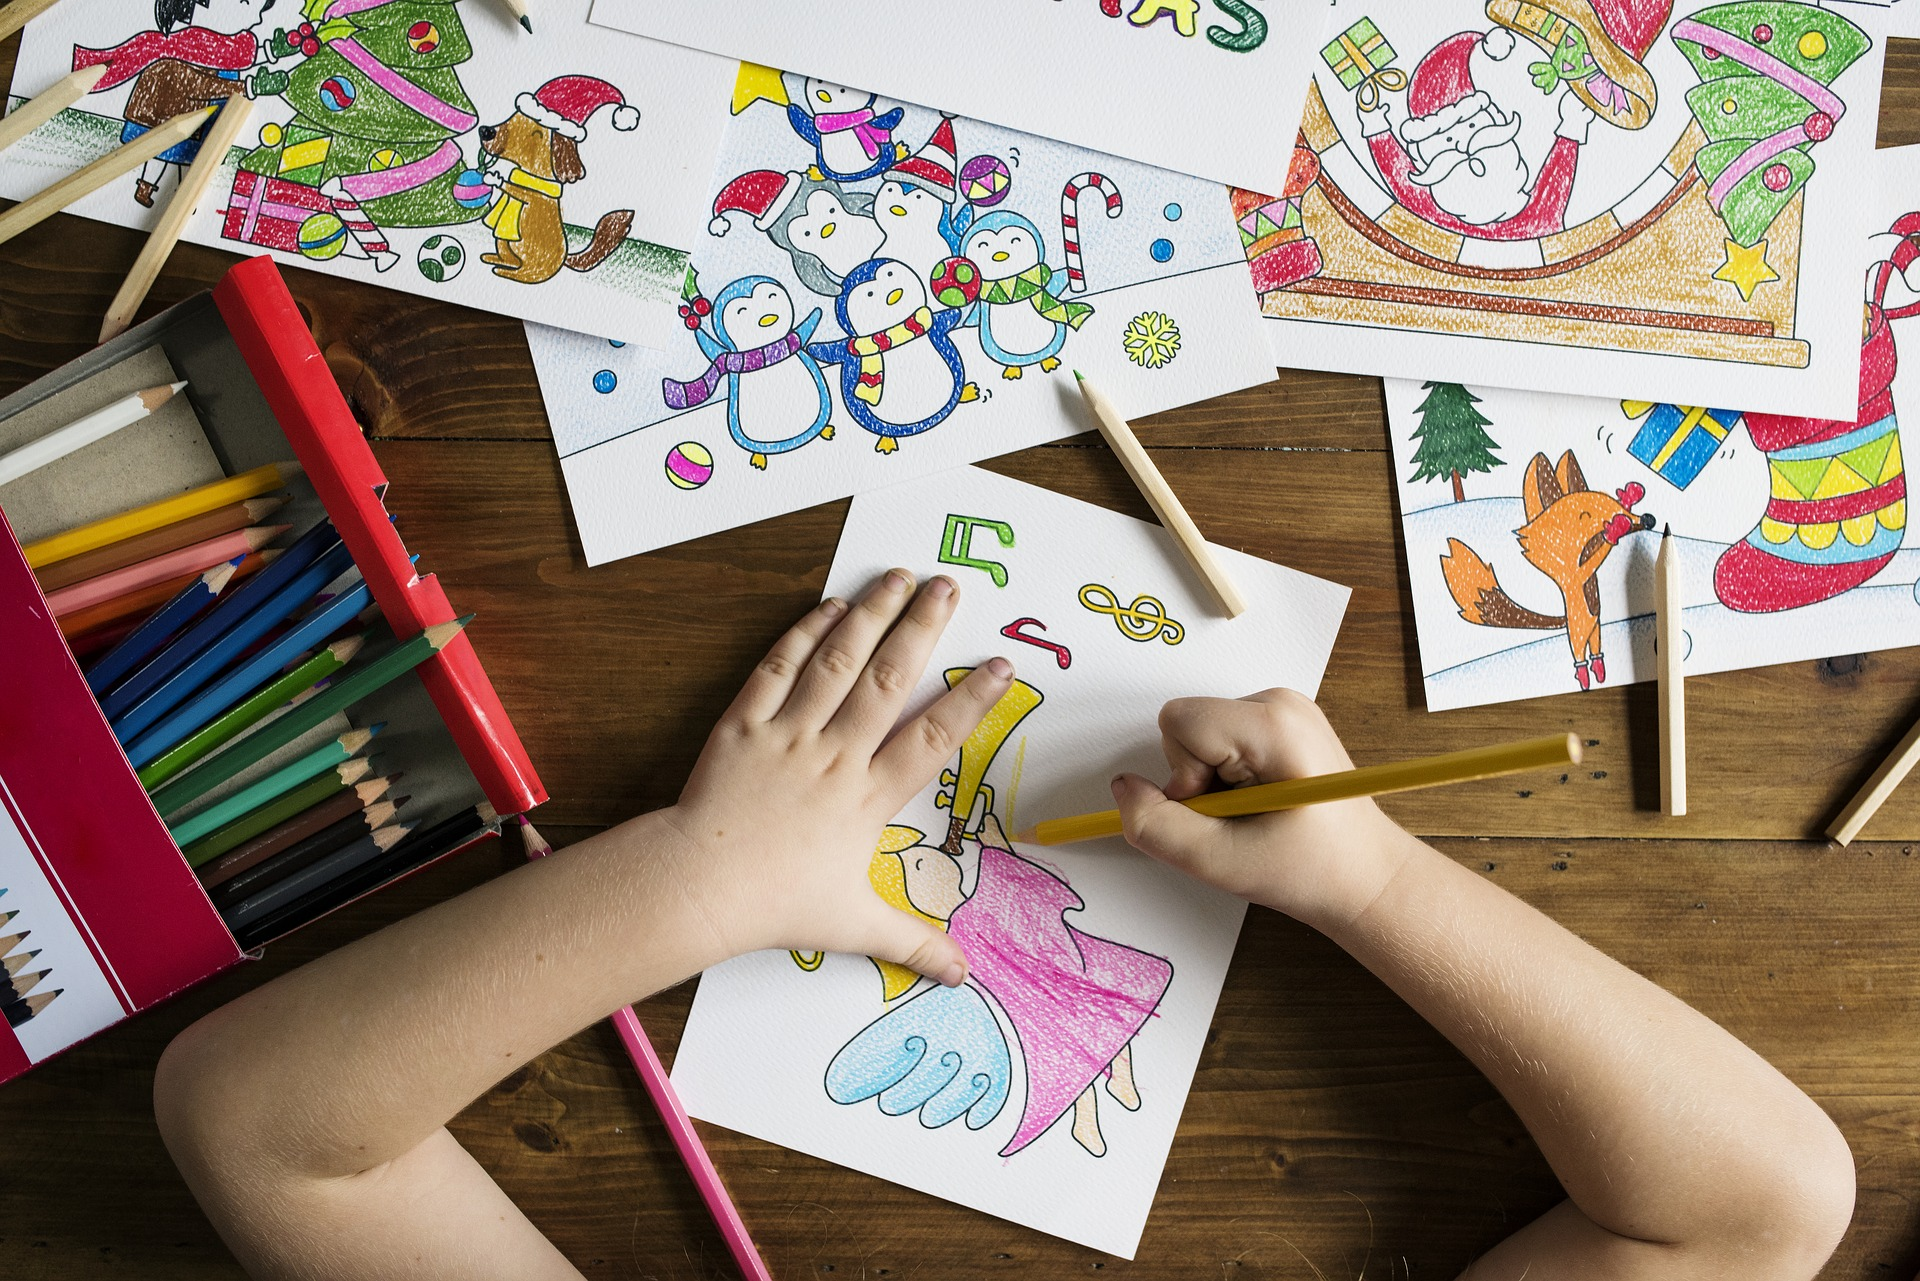 a child drawing and coloring.